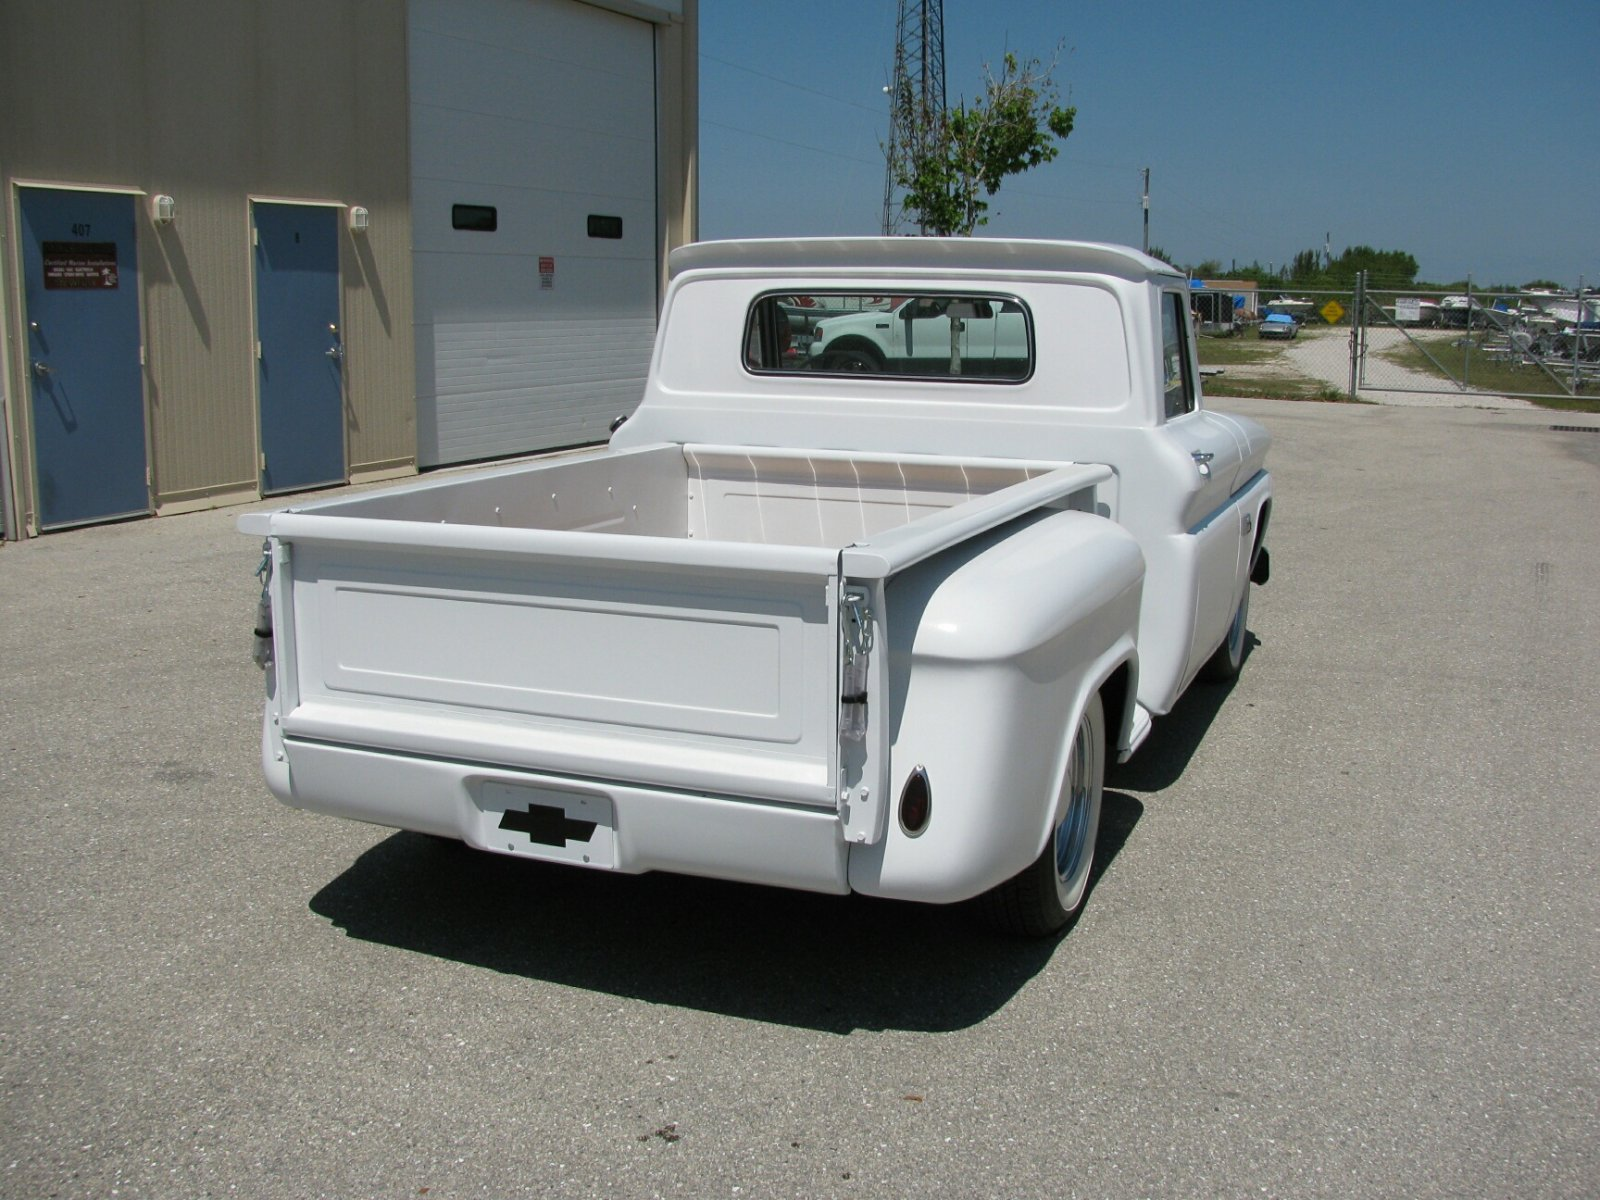 Image Of 1966 Chevy C10 Stepside Pickup Purchase Used Chevrolet Truck Step Side Hot Rod Sbc 350 700r4 Trans For Sale